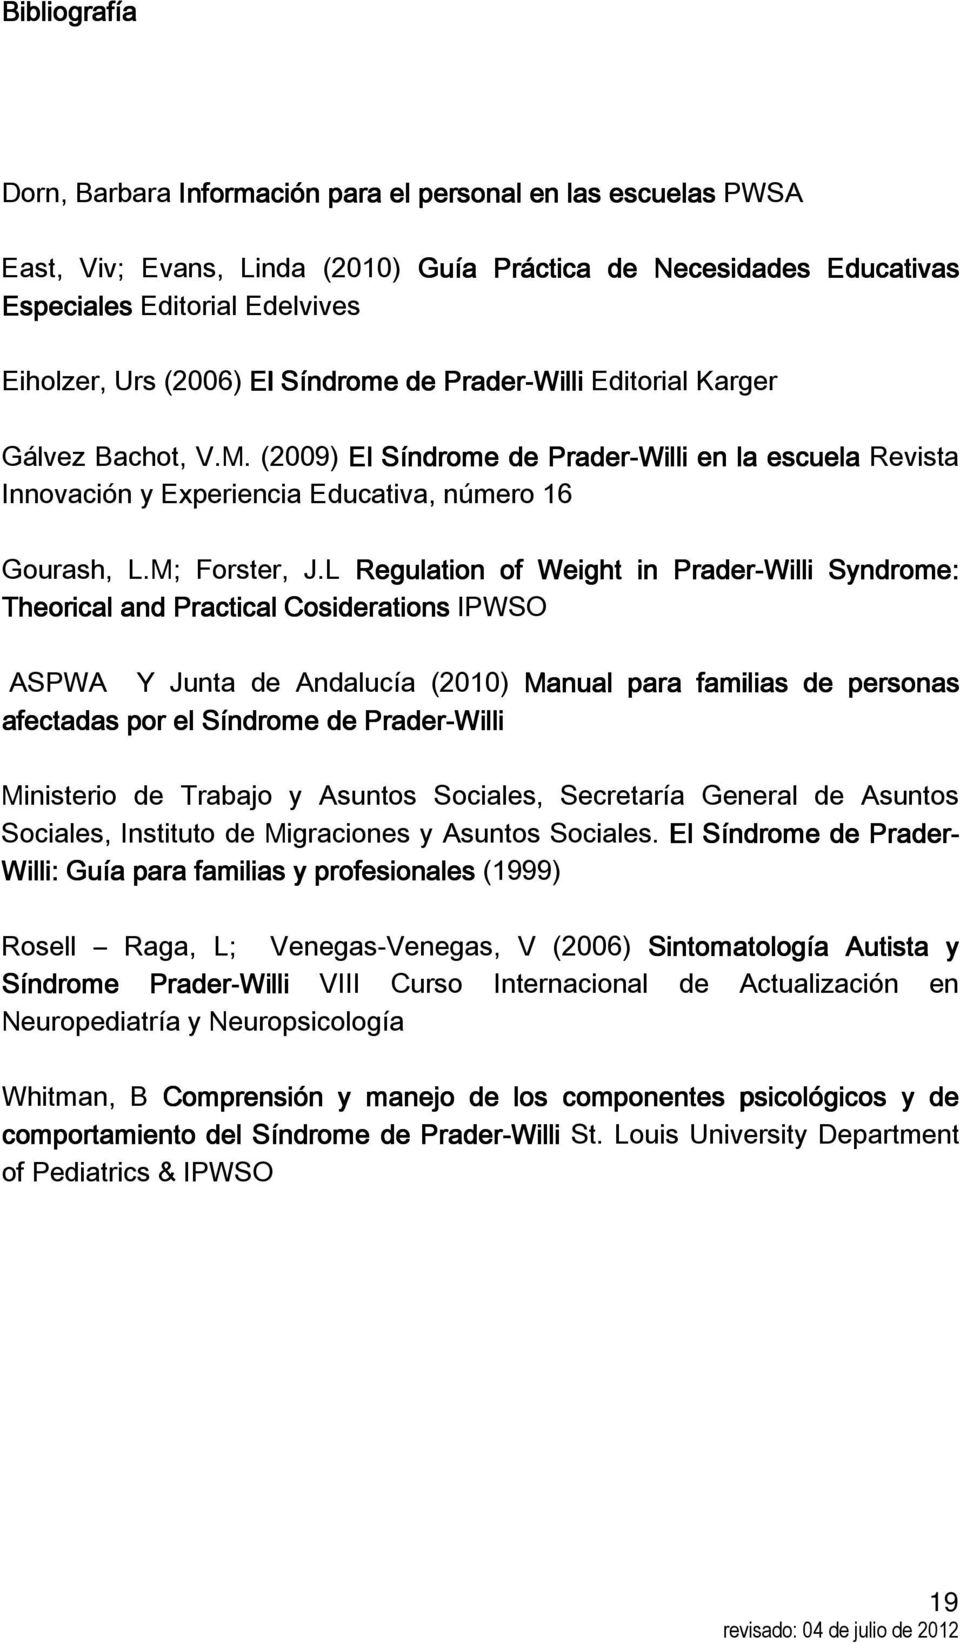 L Regulation of Weight in Prader-Willi Syndrome: Theorical and Practical Cosiderations IPWSO ASPWA Y Junta de Andalucía (2010) Manual para familias de personas afectadas por el Síndrome de